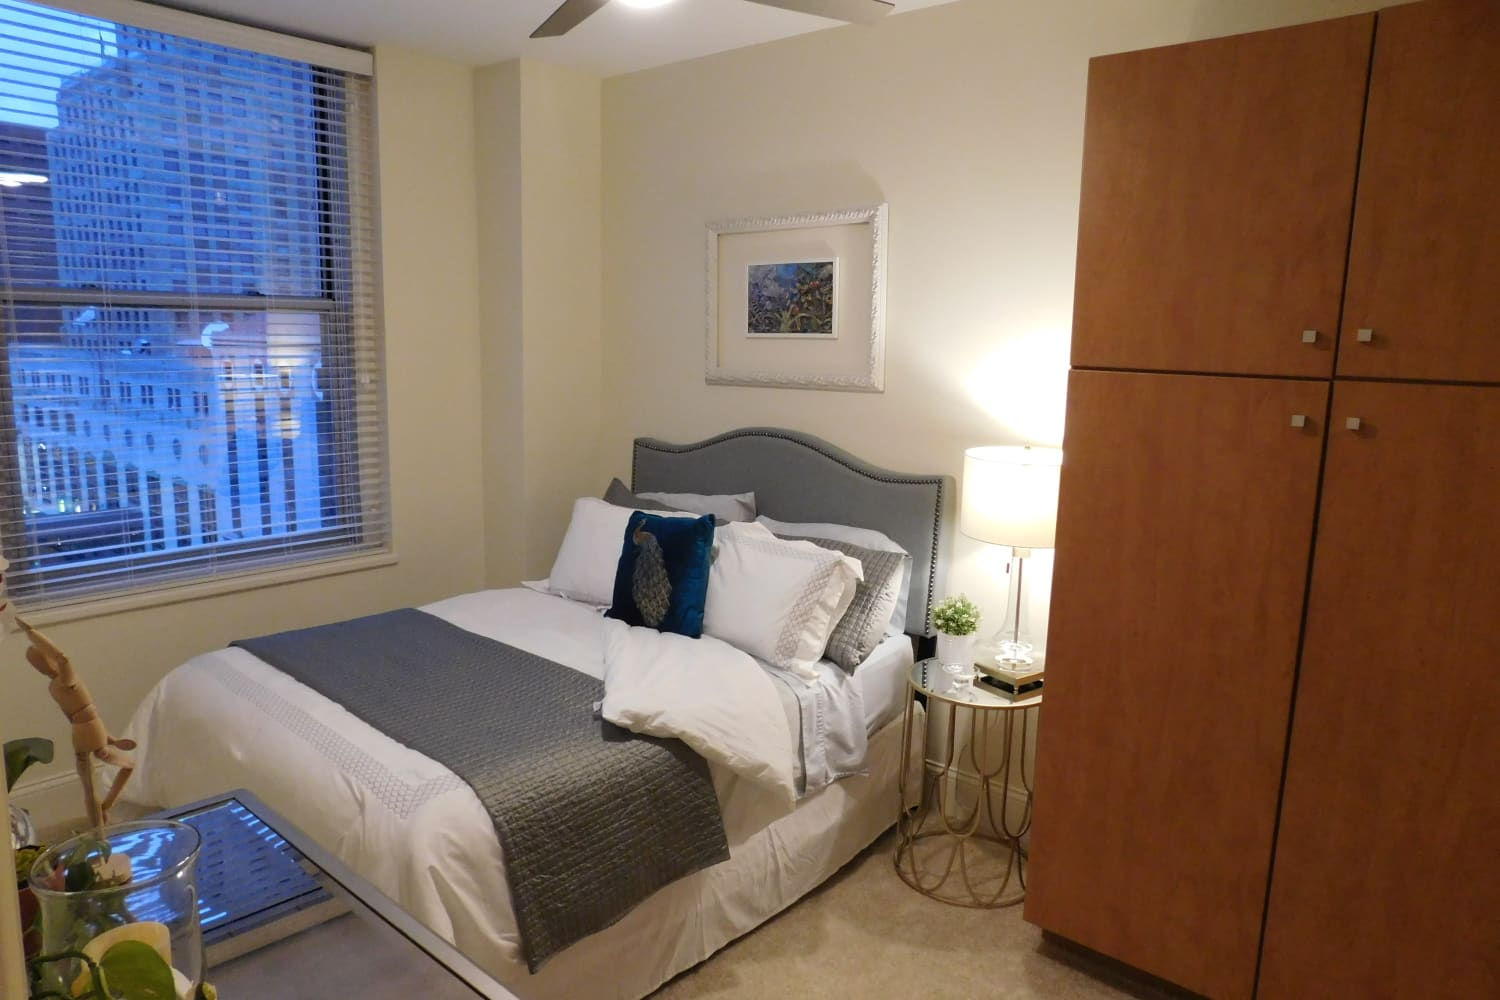 Guest bedroom at The Reserve at 4th and Race in Cincinnati